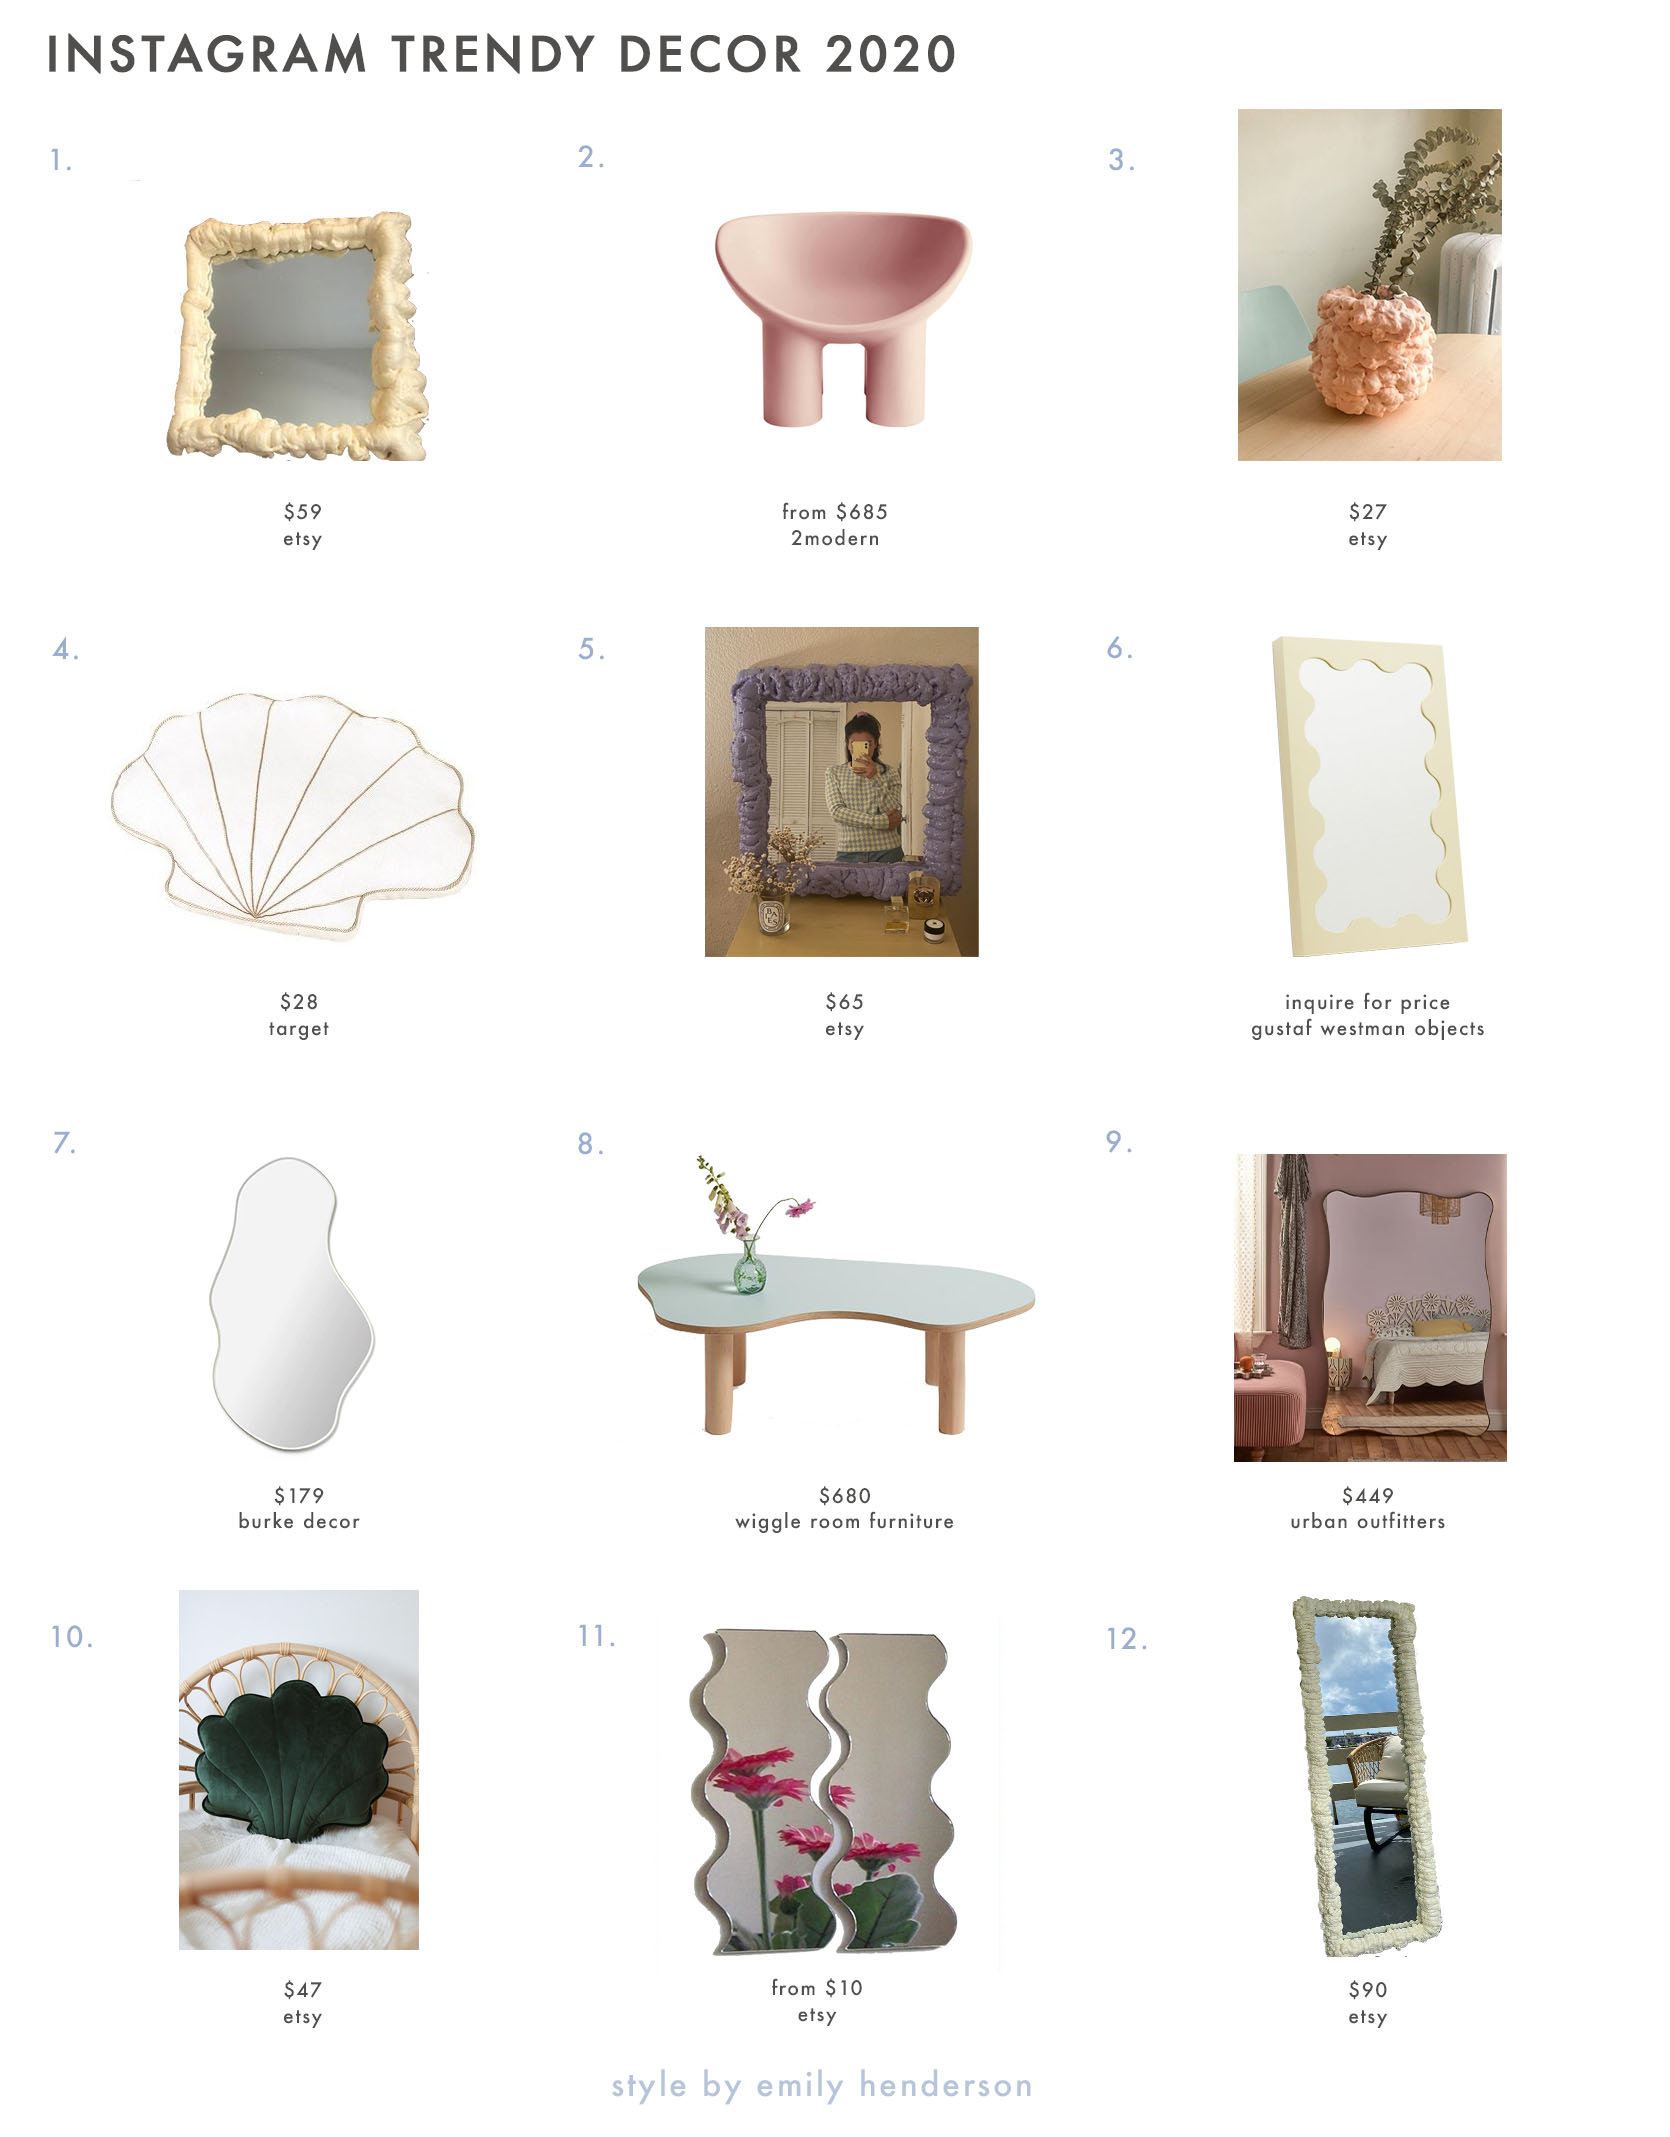 Instagram Made Me Like These Trendy Furniture Items...But Are They Actually Cool? Best Children's Lighting & Home Decor Online Store